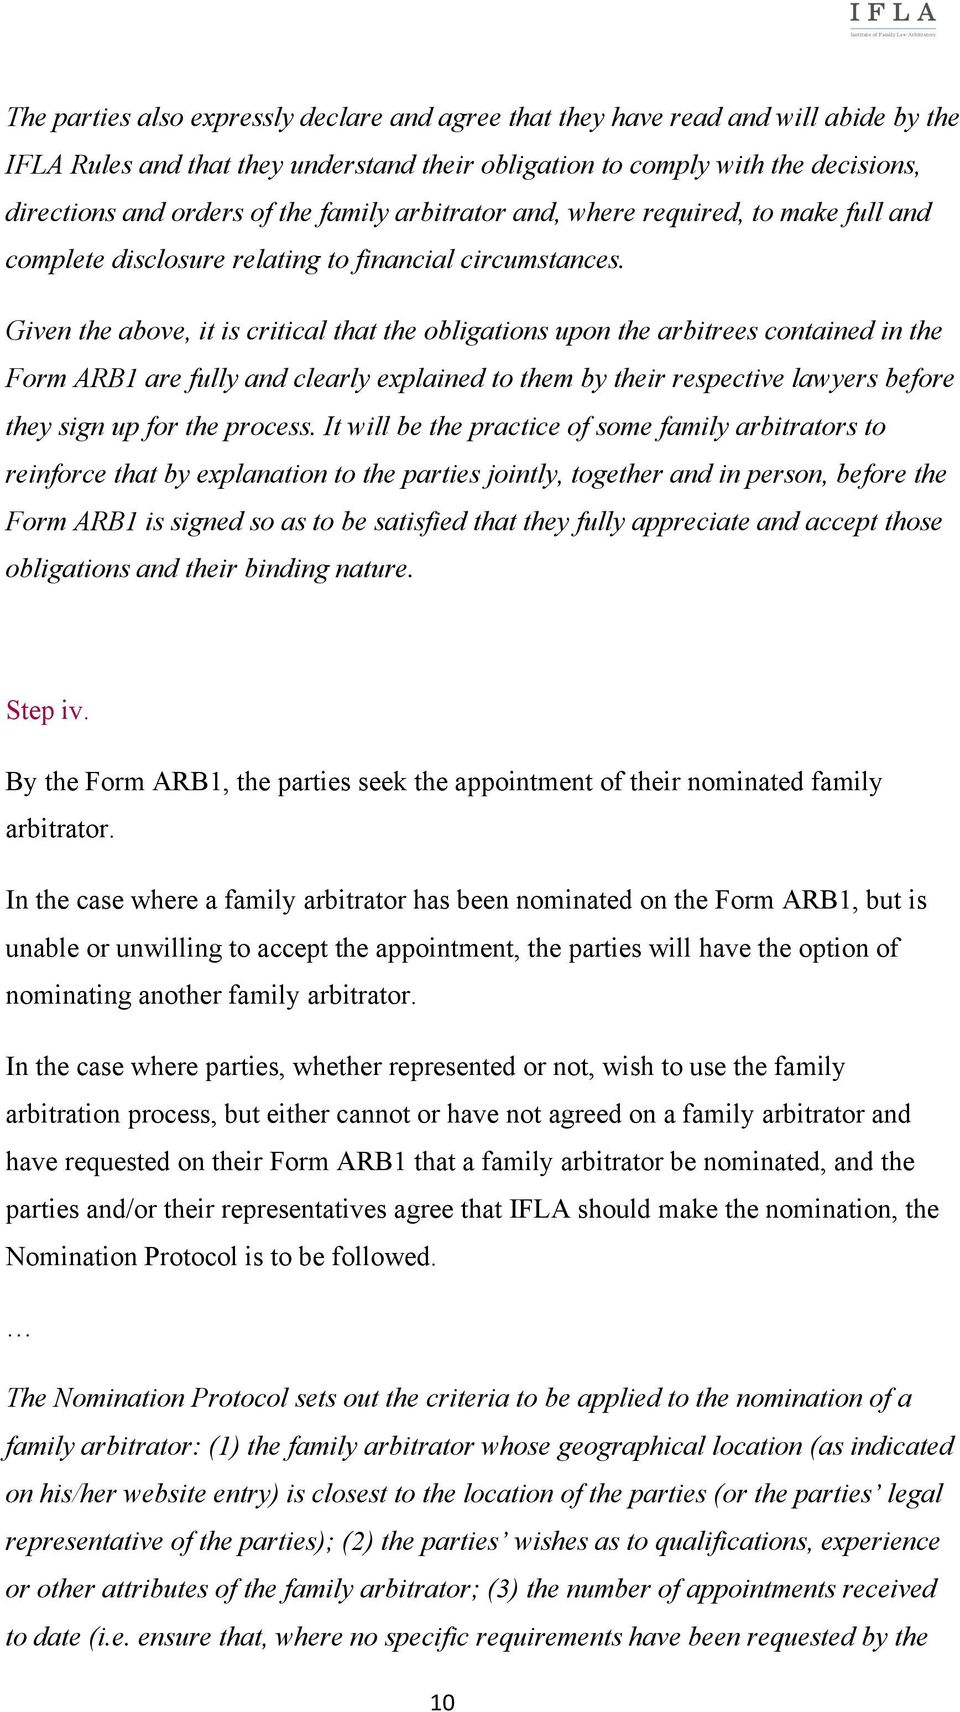 Given the above, it is critical that the obligations upon the arbitrees contained in the Form ARB1 are fully and clearly explained to them by their respective lawyers before they sign up for the